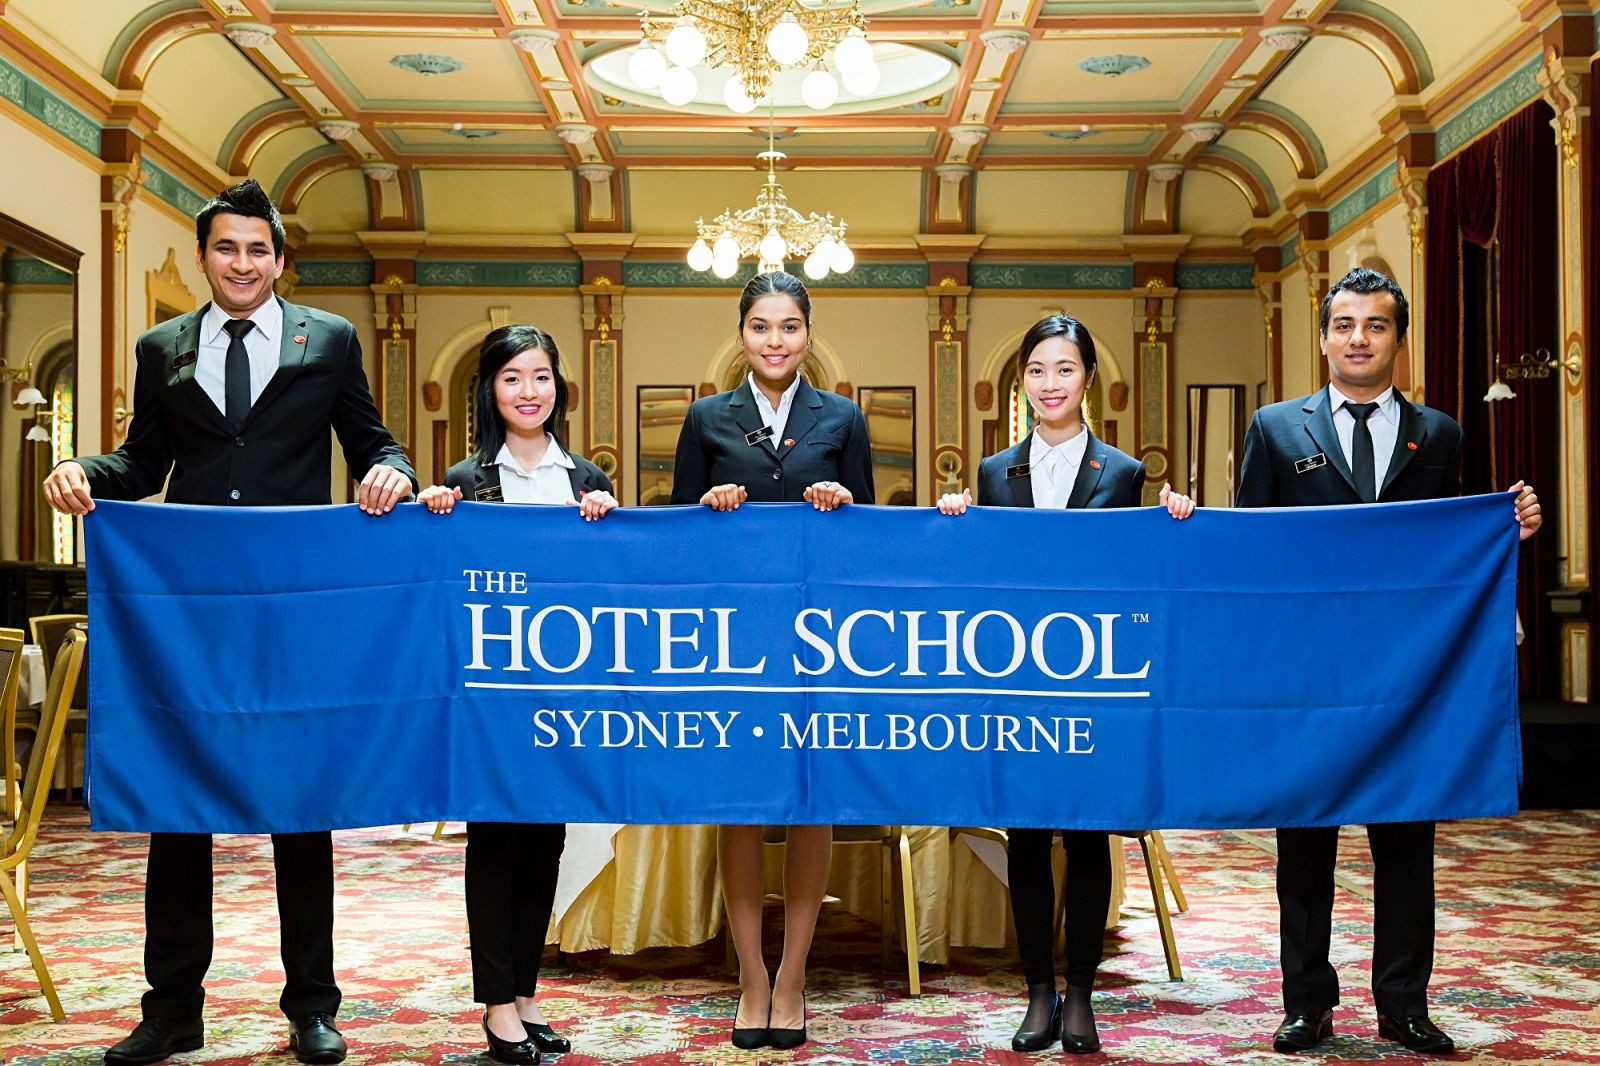 The Hotel School Sydney – Melbourne